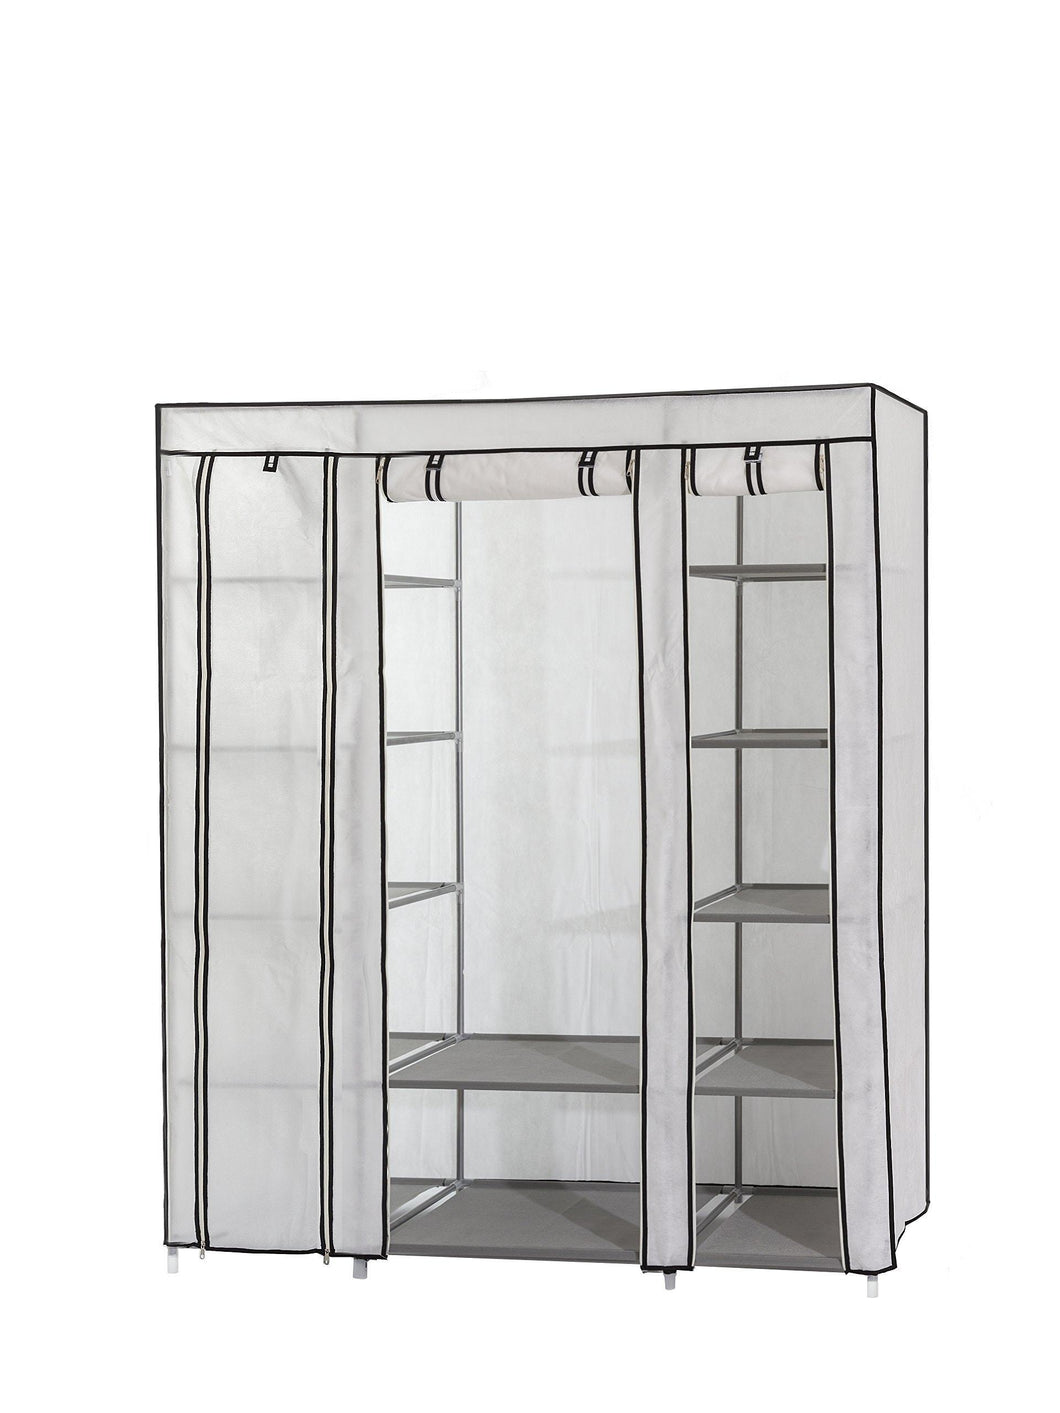 On amazon dream palace portable fabric wardrobe with shelves covered closet rack with bonus sock organizer hanger pack extra wide 59 white